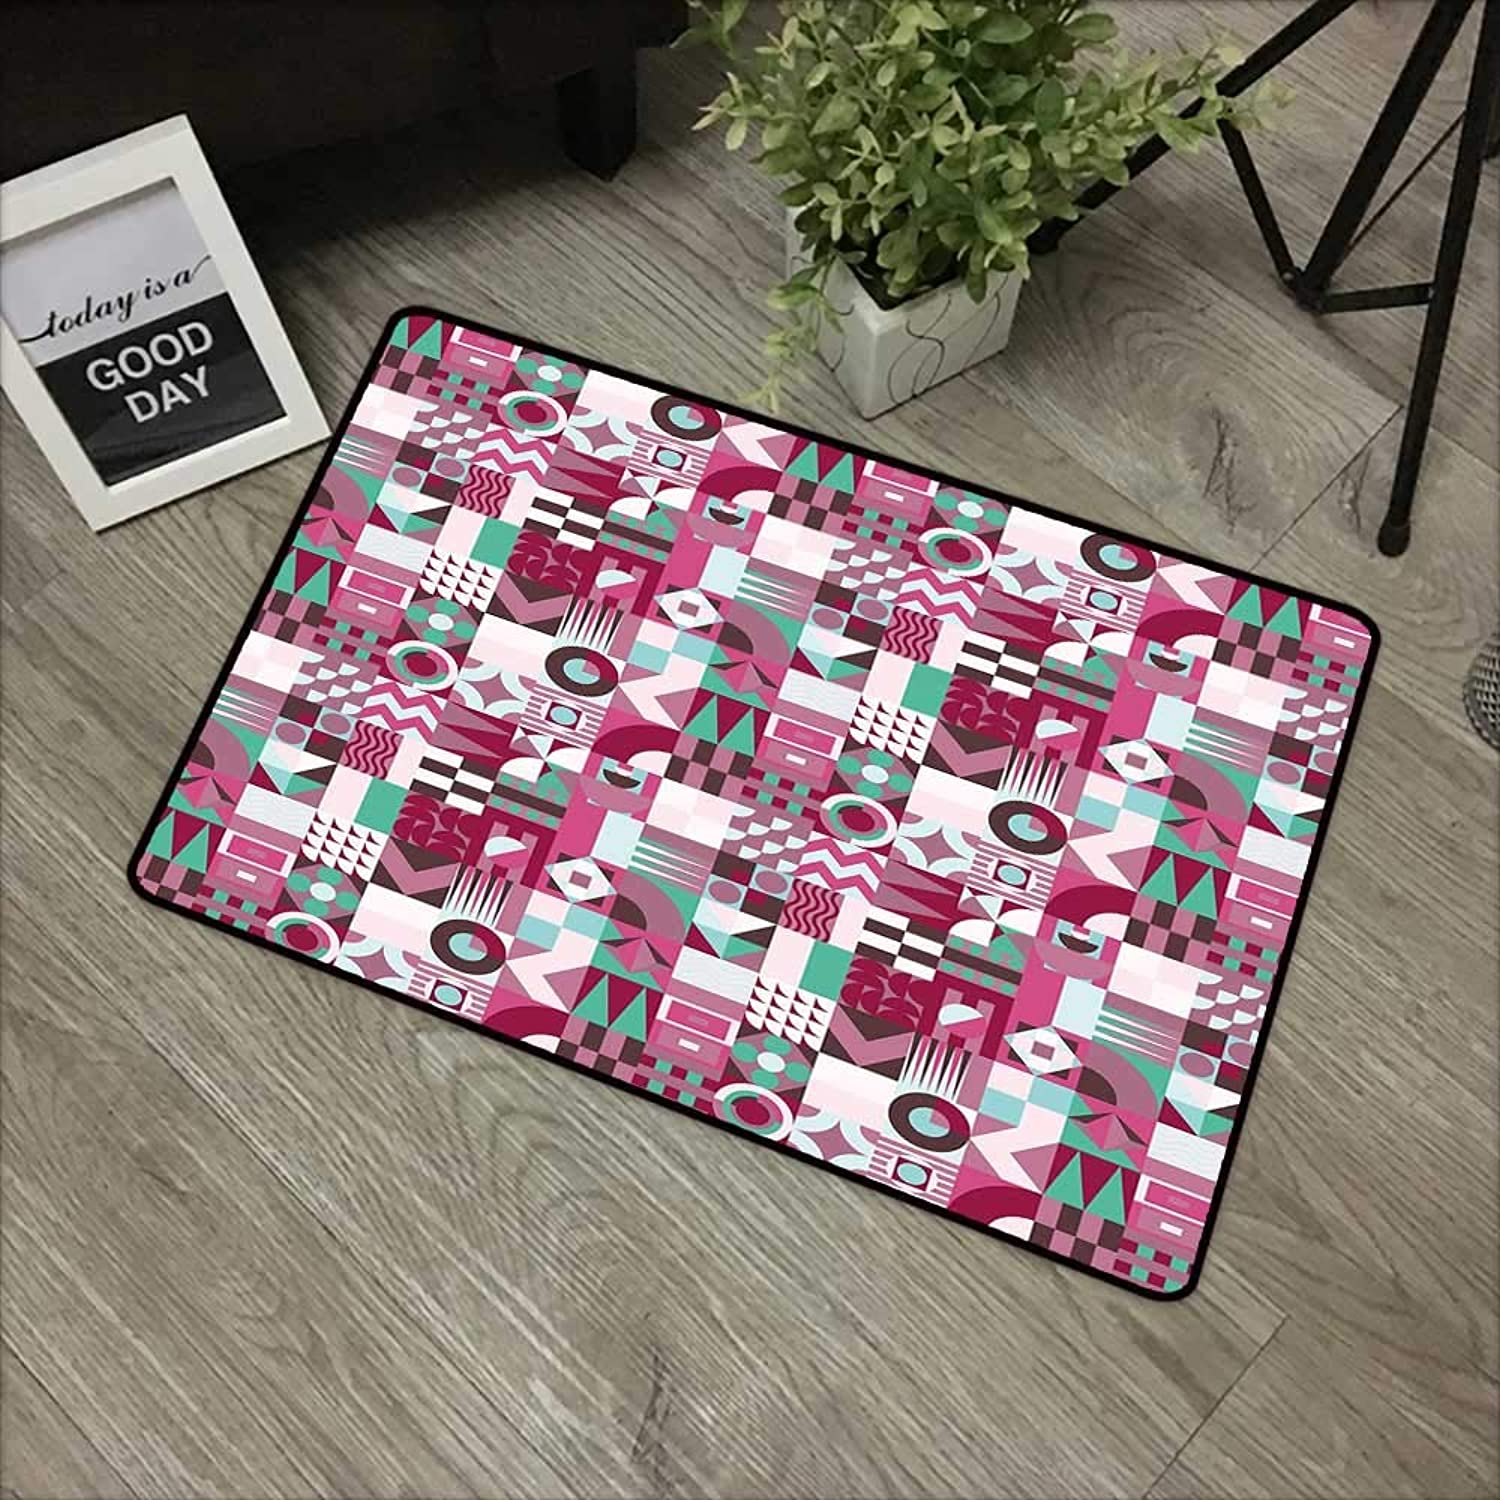 Learning pad W35 x L59 INCH Mid Century,Rich Collection of Motifs from Fifties Groovy Unusual Forms Checkered Design,Multicolor Non-Slip, with Non-Slip Backing,Non-Slip Door Mat Carpet